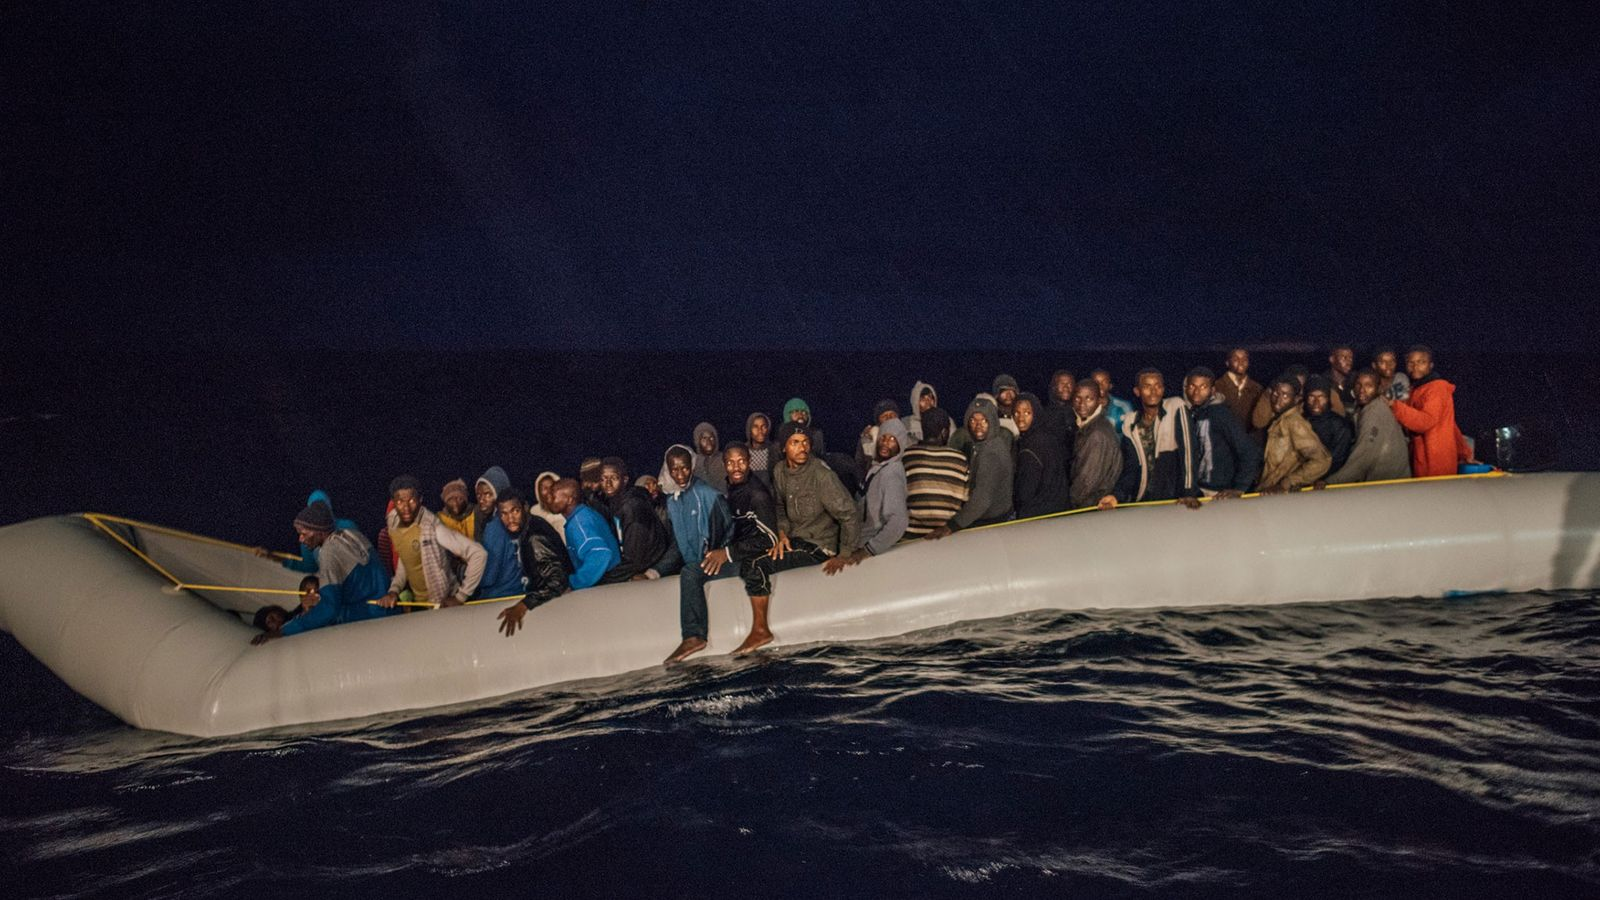 The MS Aquarius spots this dinghy in distress with 112 people on board, just as it ...